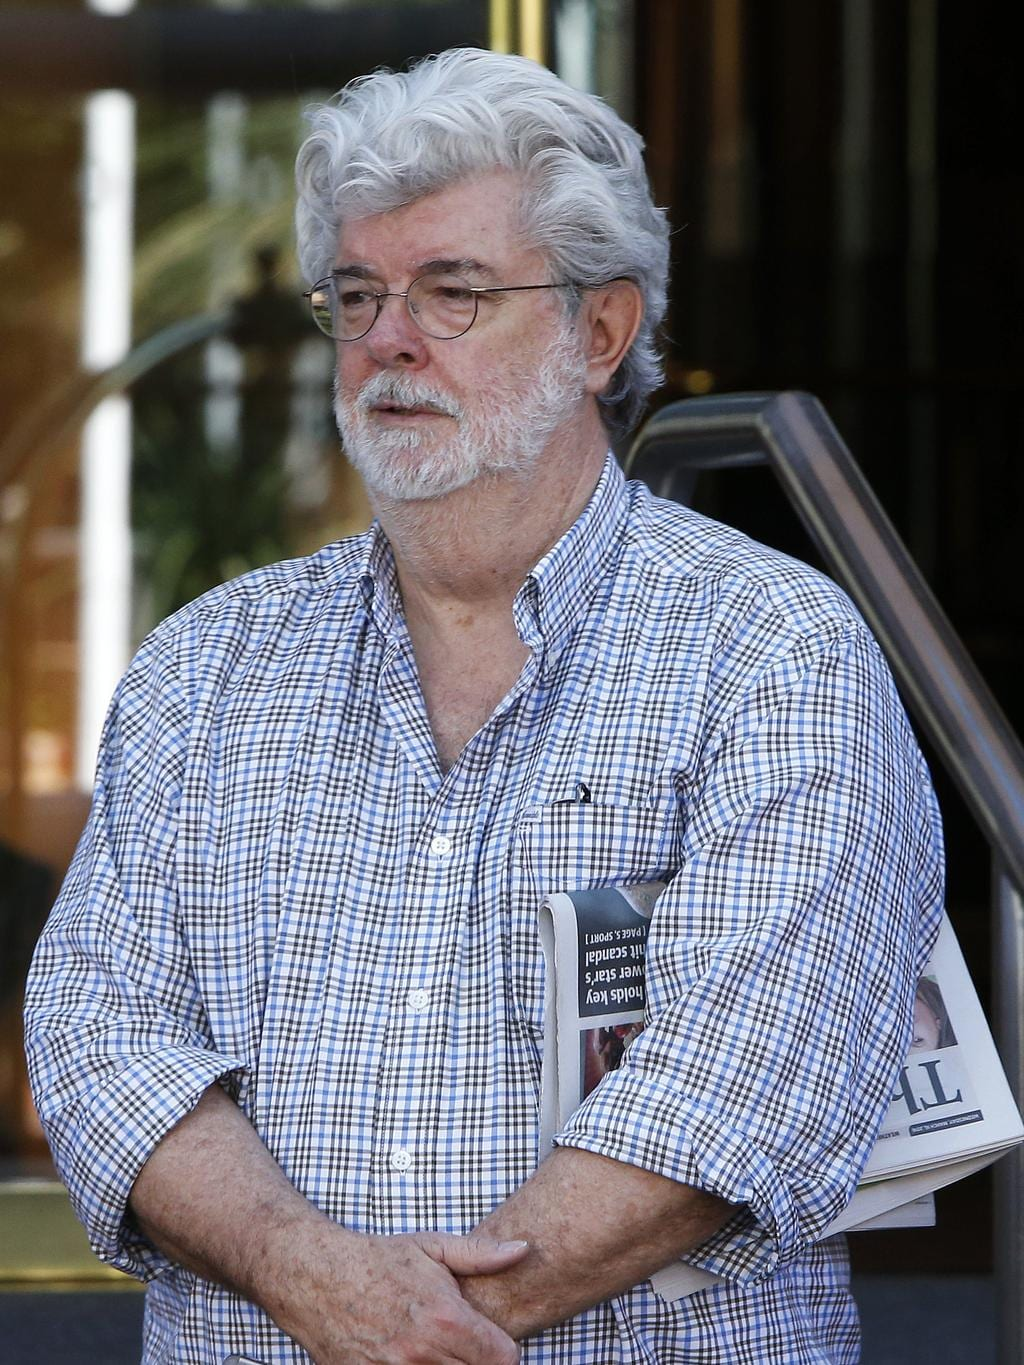 Star Wars creator George Lucas in Adelaide | Adelaide Now